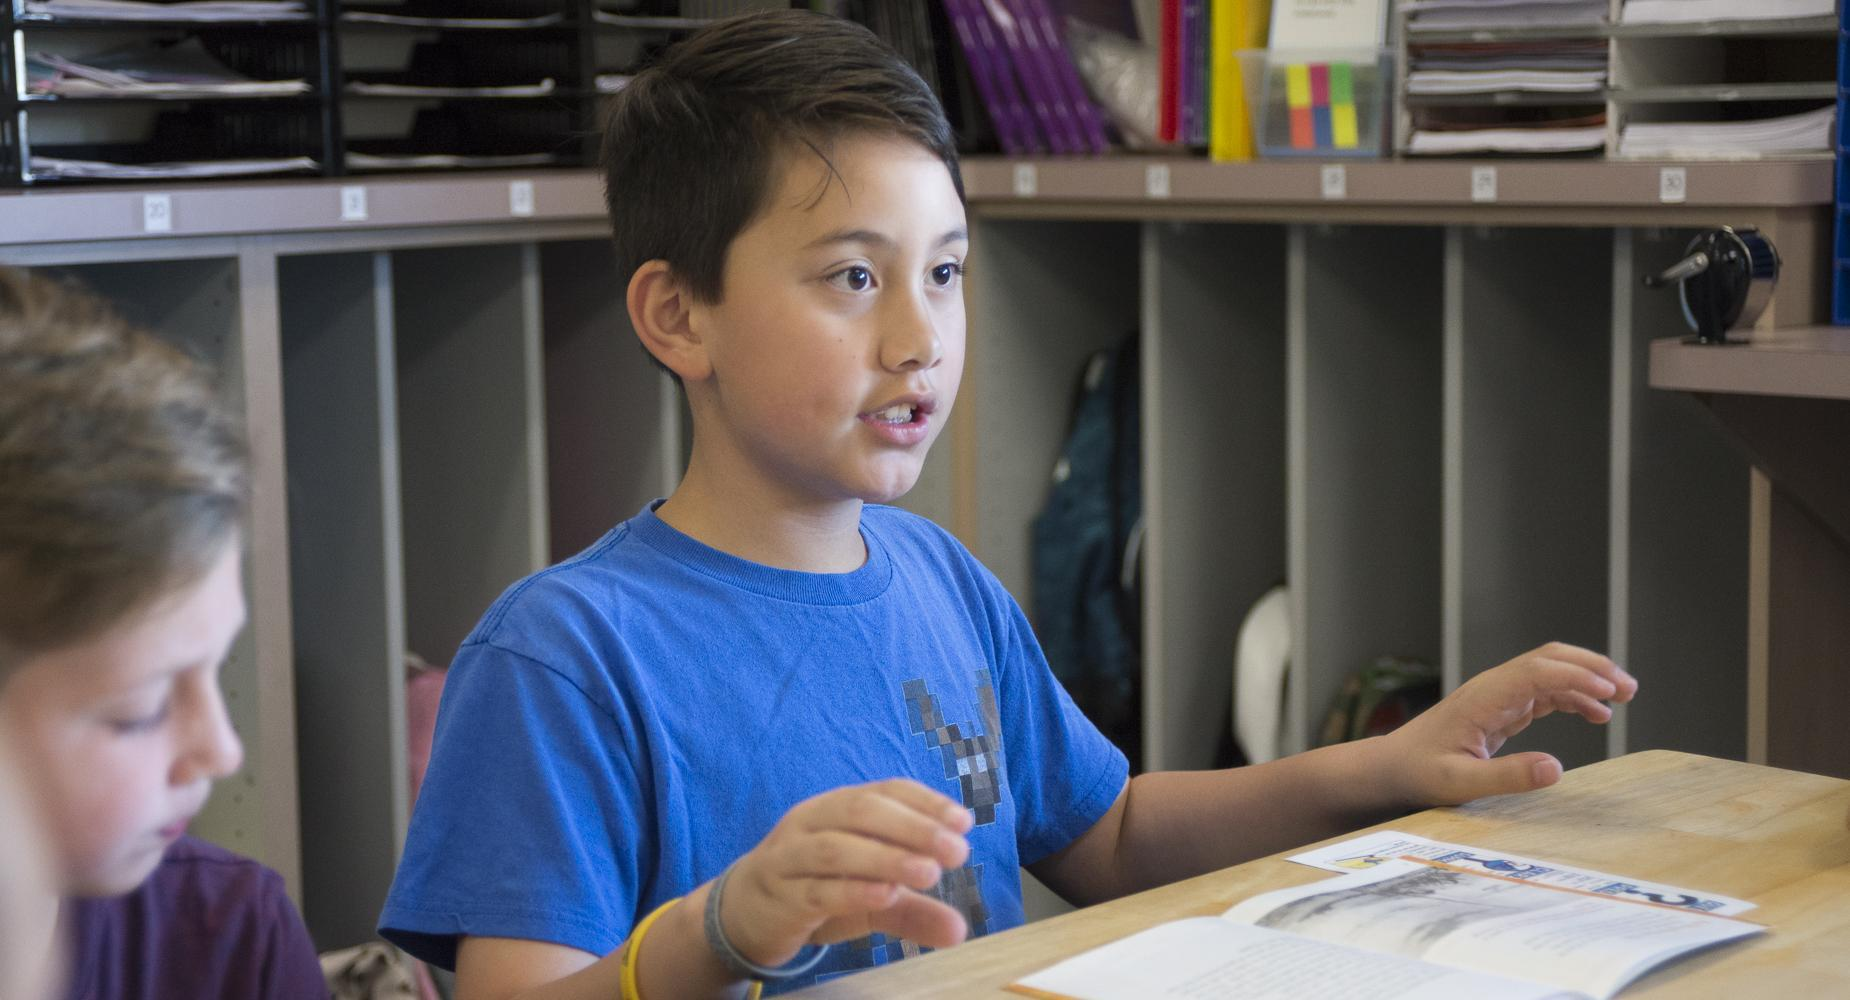 Boy talks with book laid out on desk